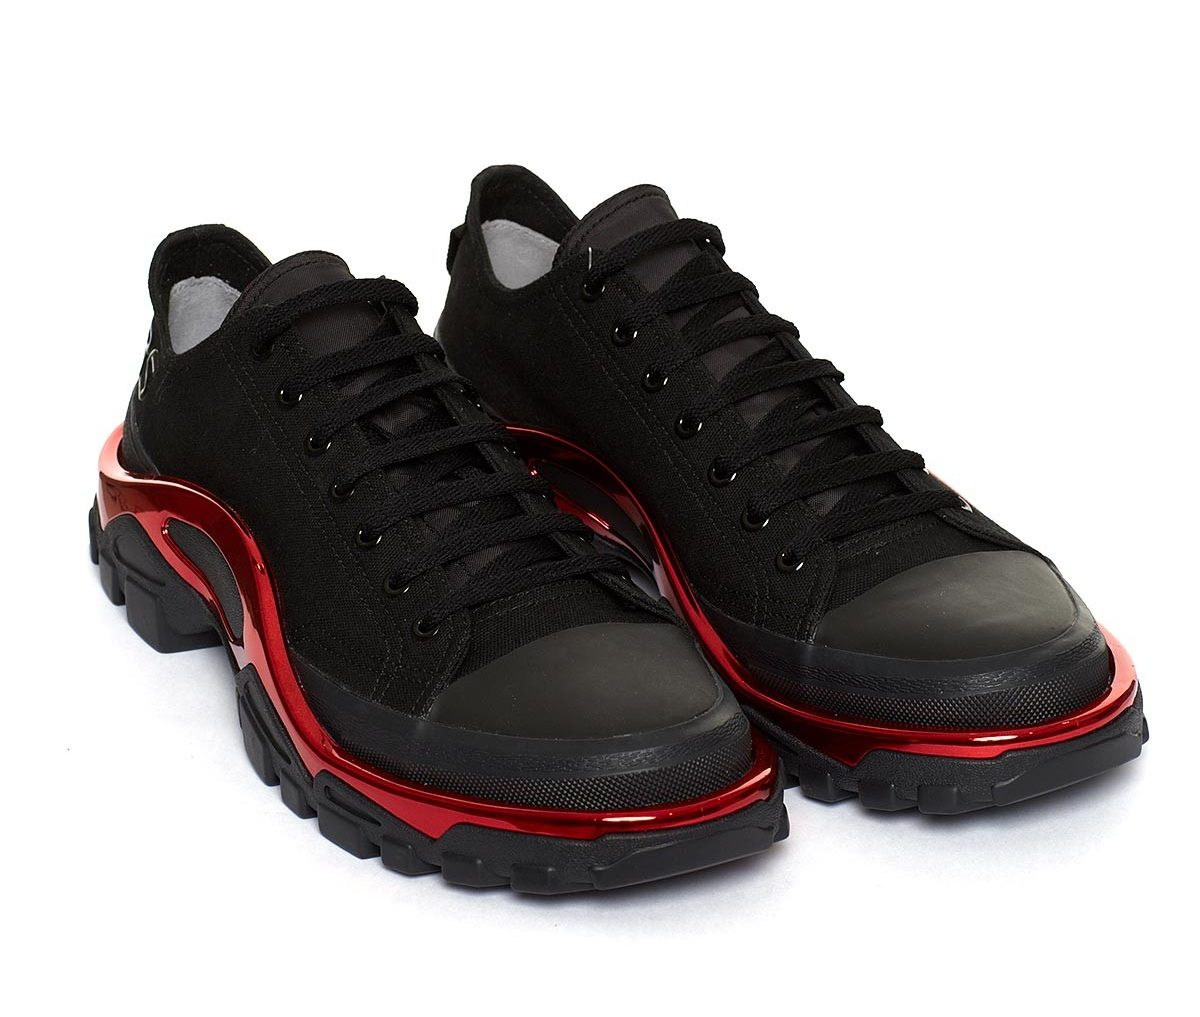 giay the thao ugly sneakers - raf simons adidas new runner - elle man